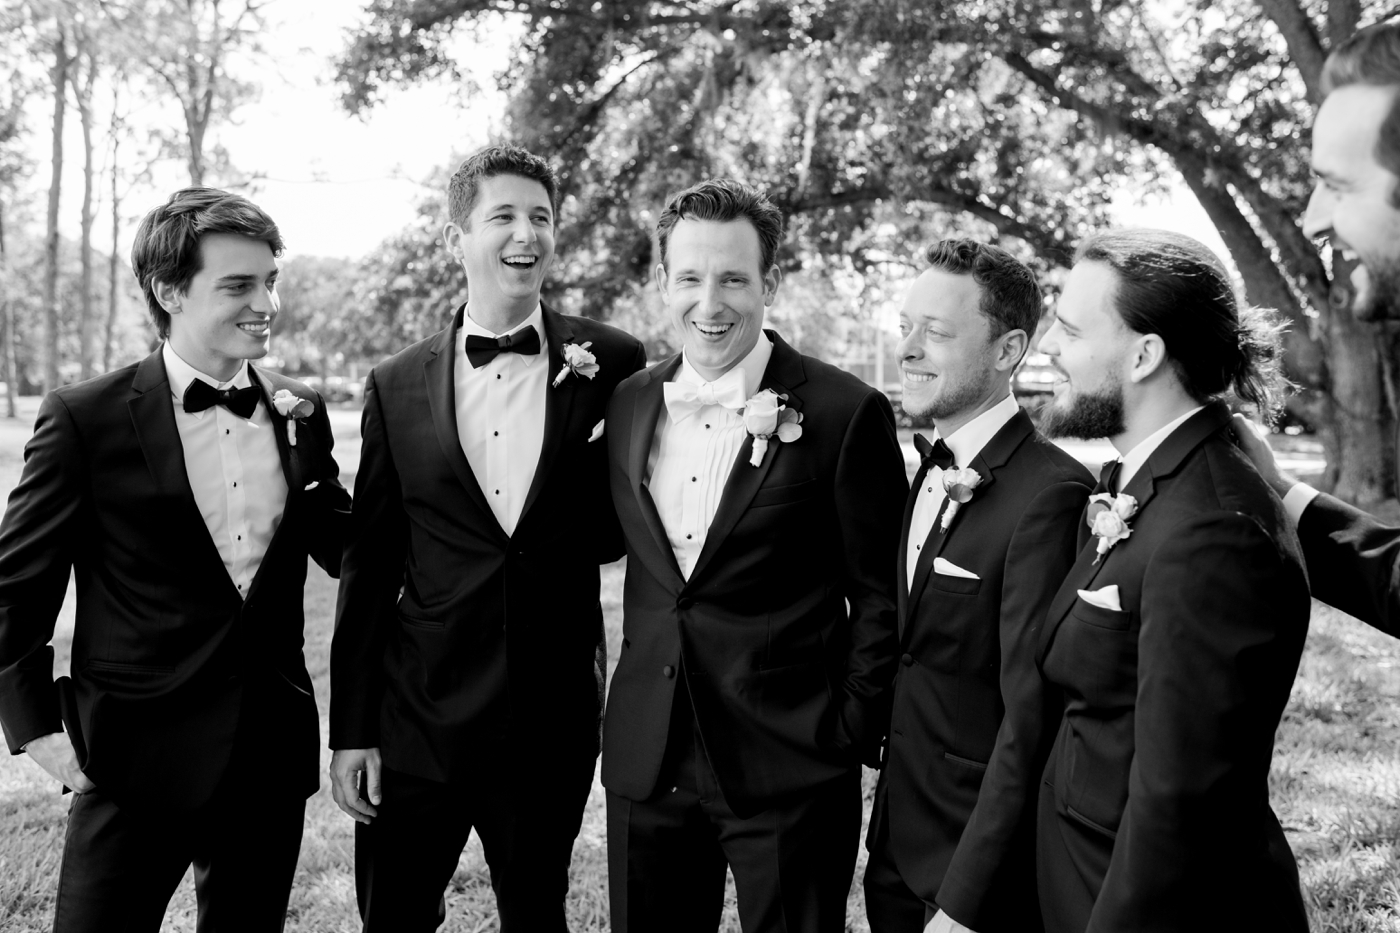 grooms photo ideas